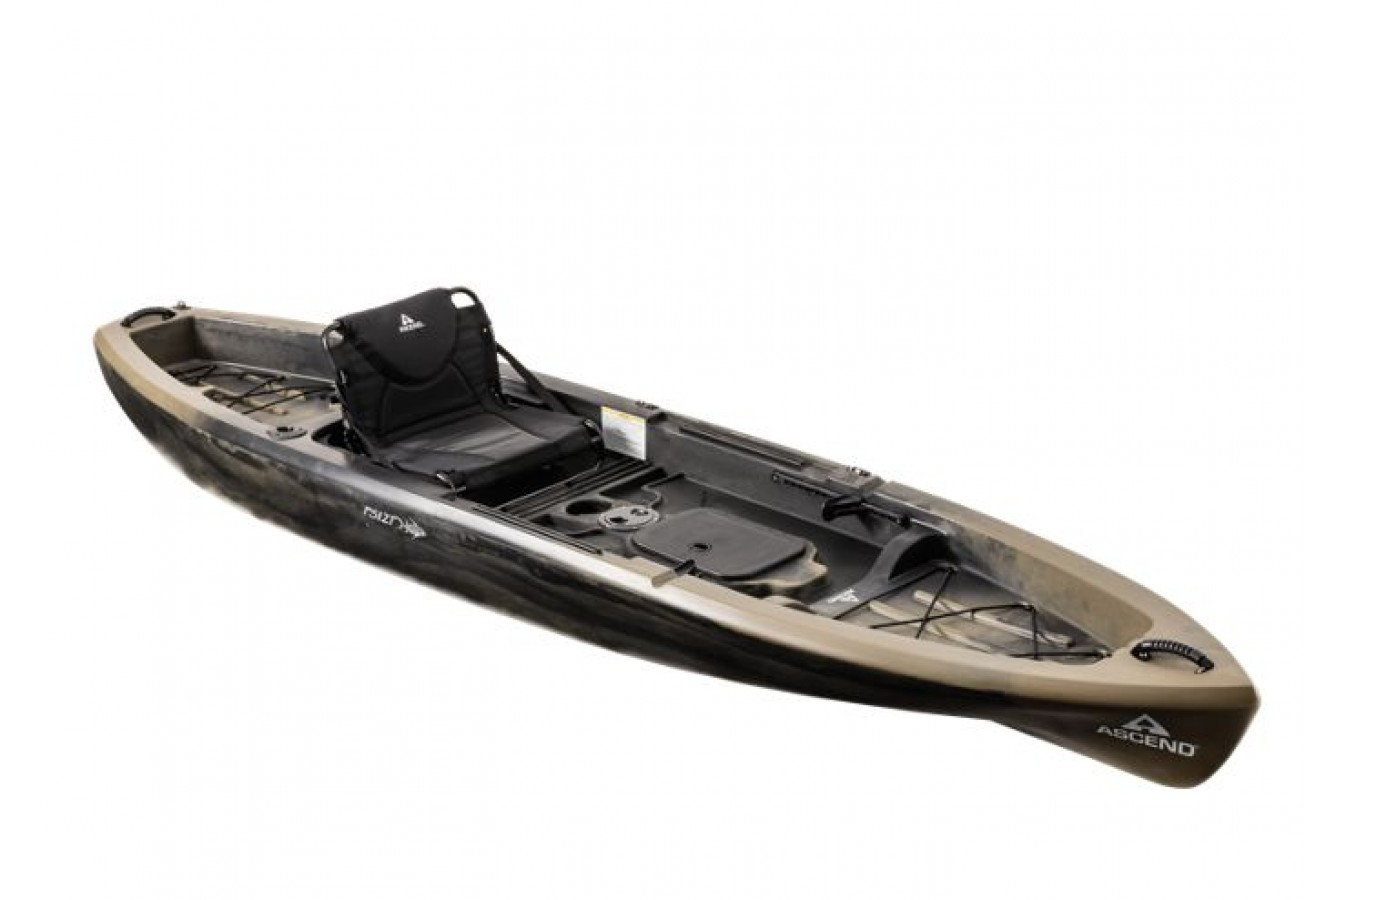 The Ascend FS12T offers a tunnel hull design for a smoother ride on water.